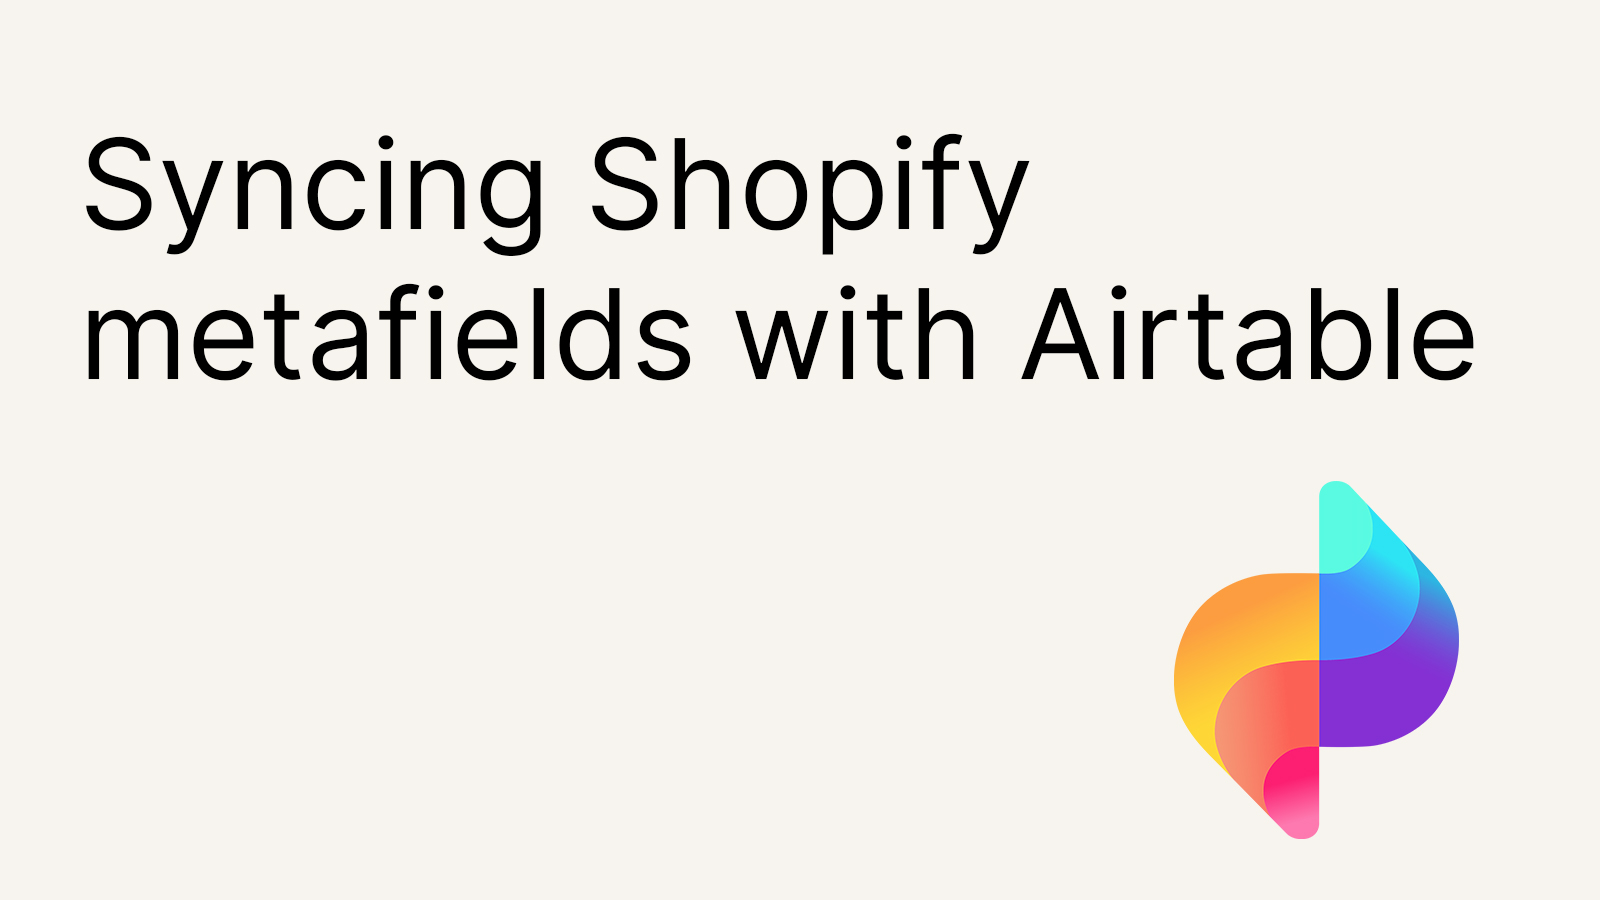 Syncing Shopify metafields with Airtable